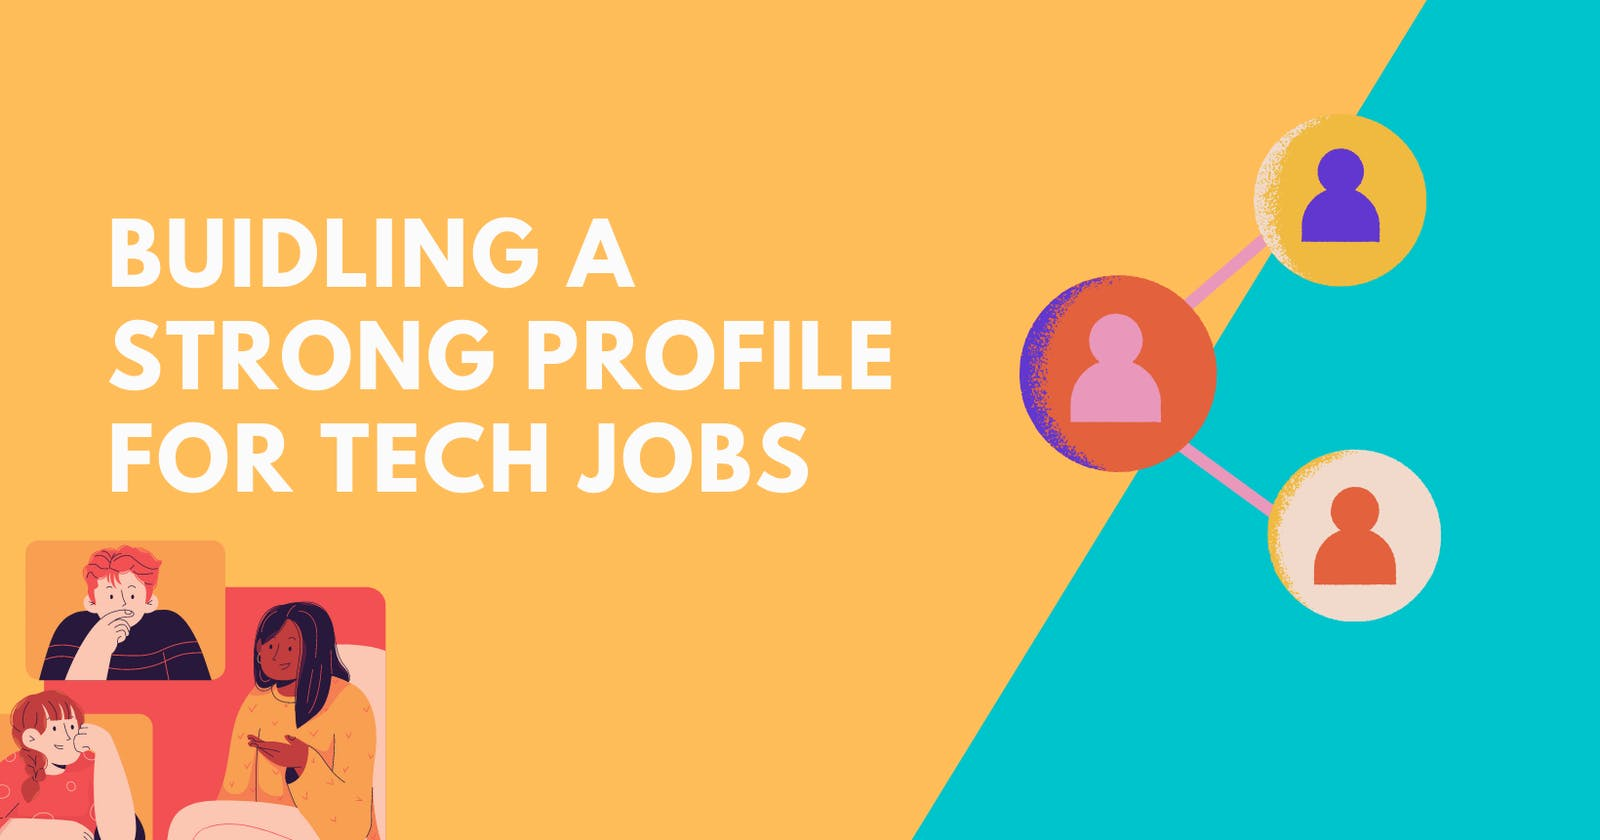 How to build a strong profile for the tech job (engineering) market